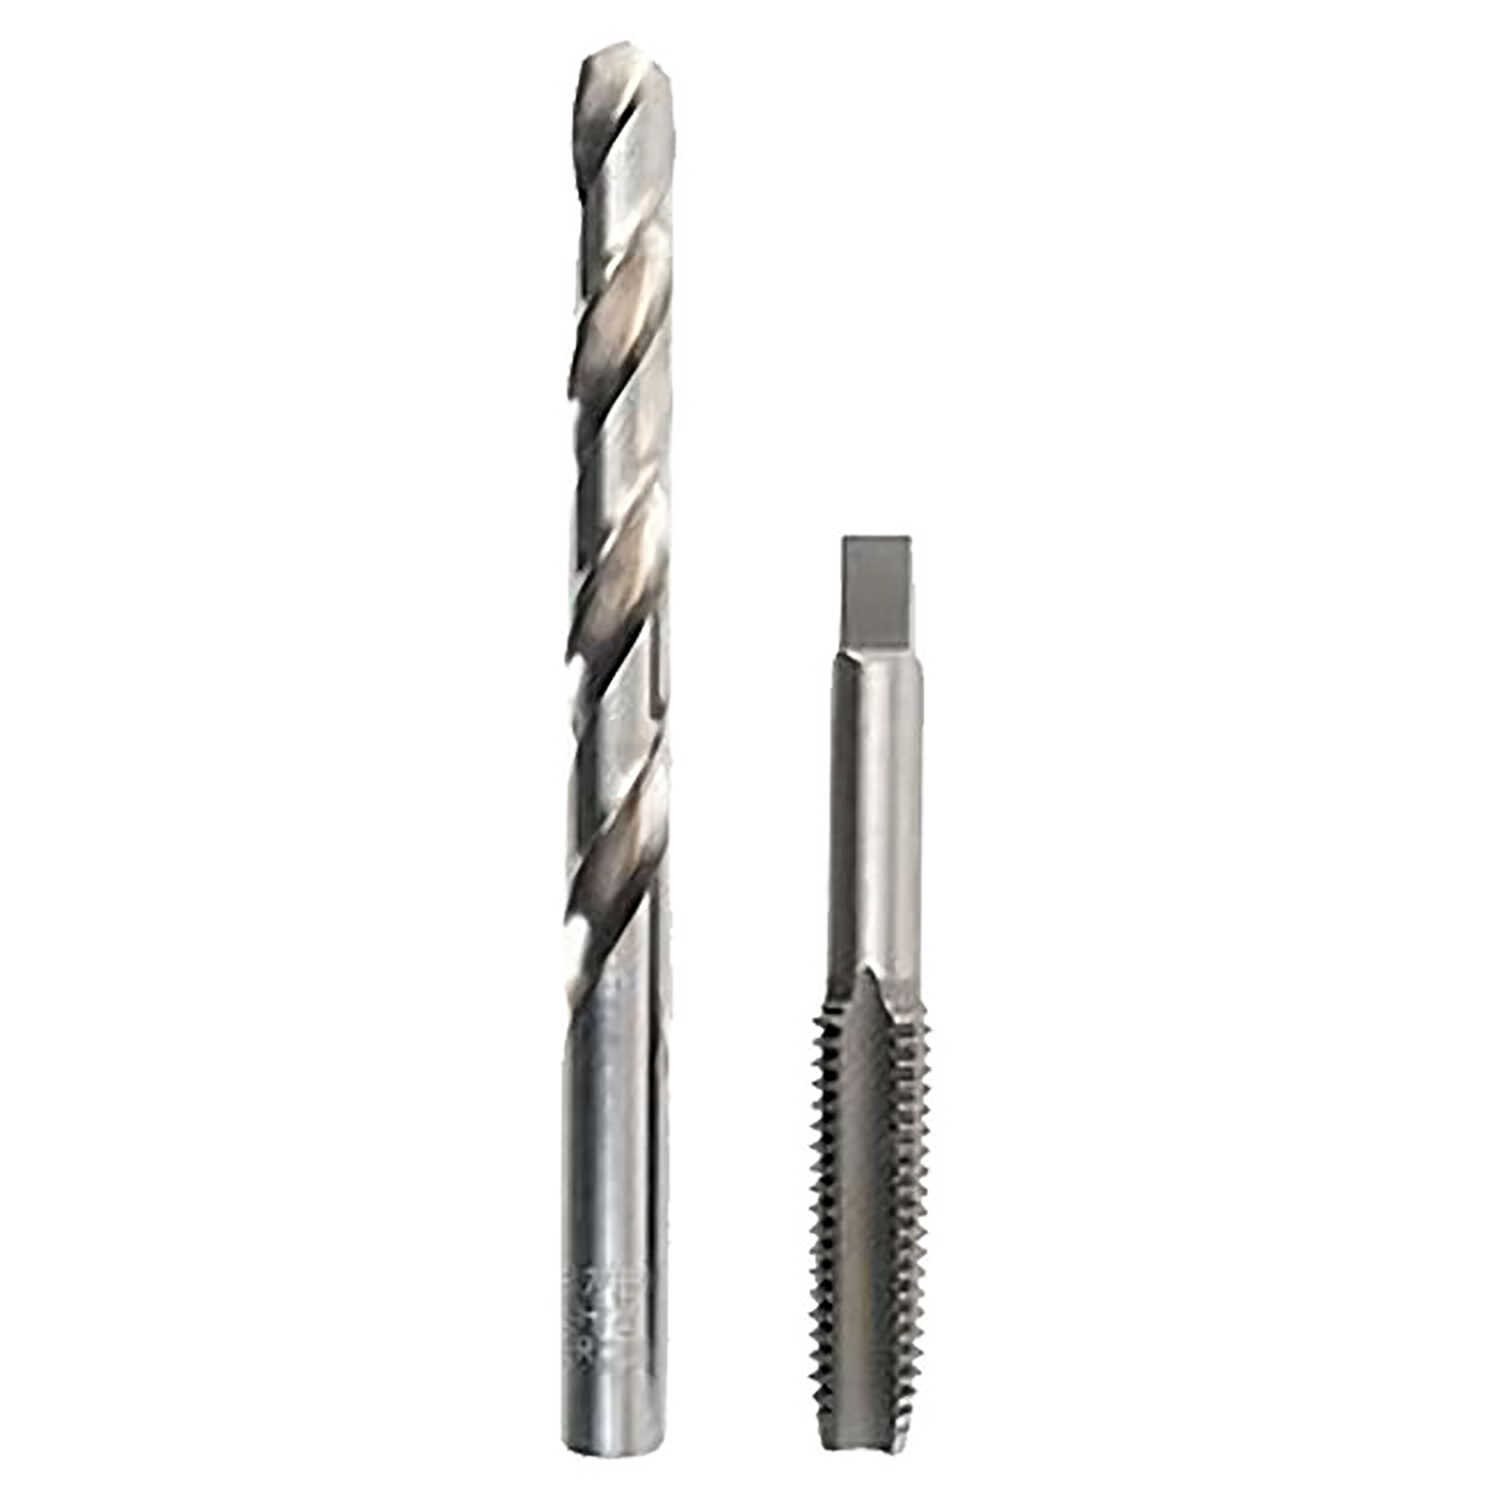 Irwin  Hanson  High Carbon Steel  HCS Tap and HSS Drill Bit Set  NC  2 pc. 1/2 - 13